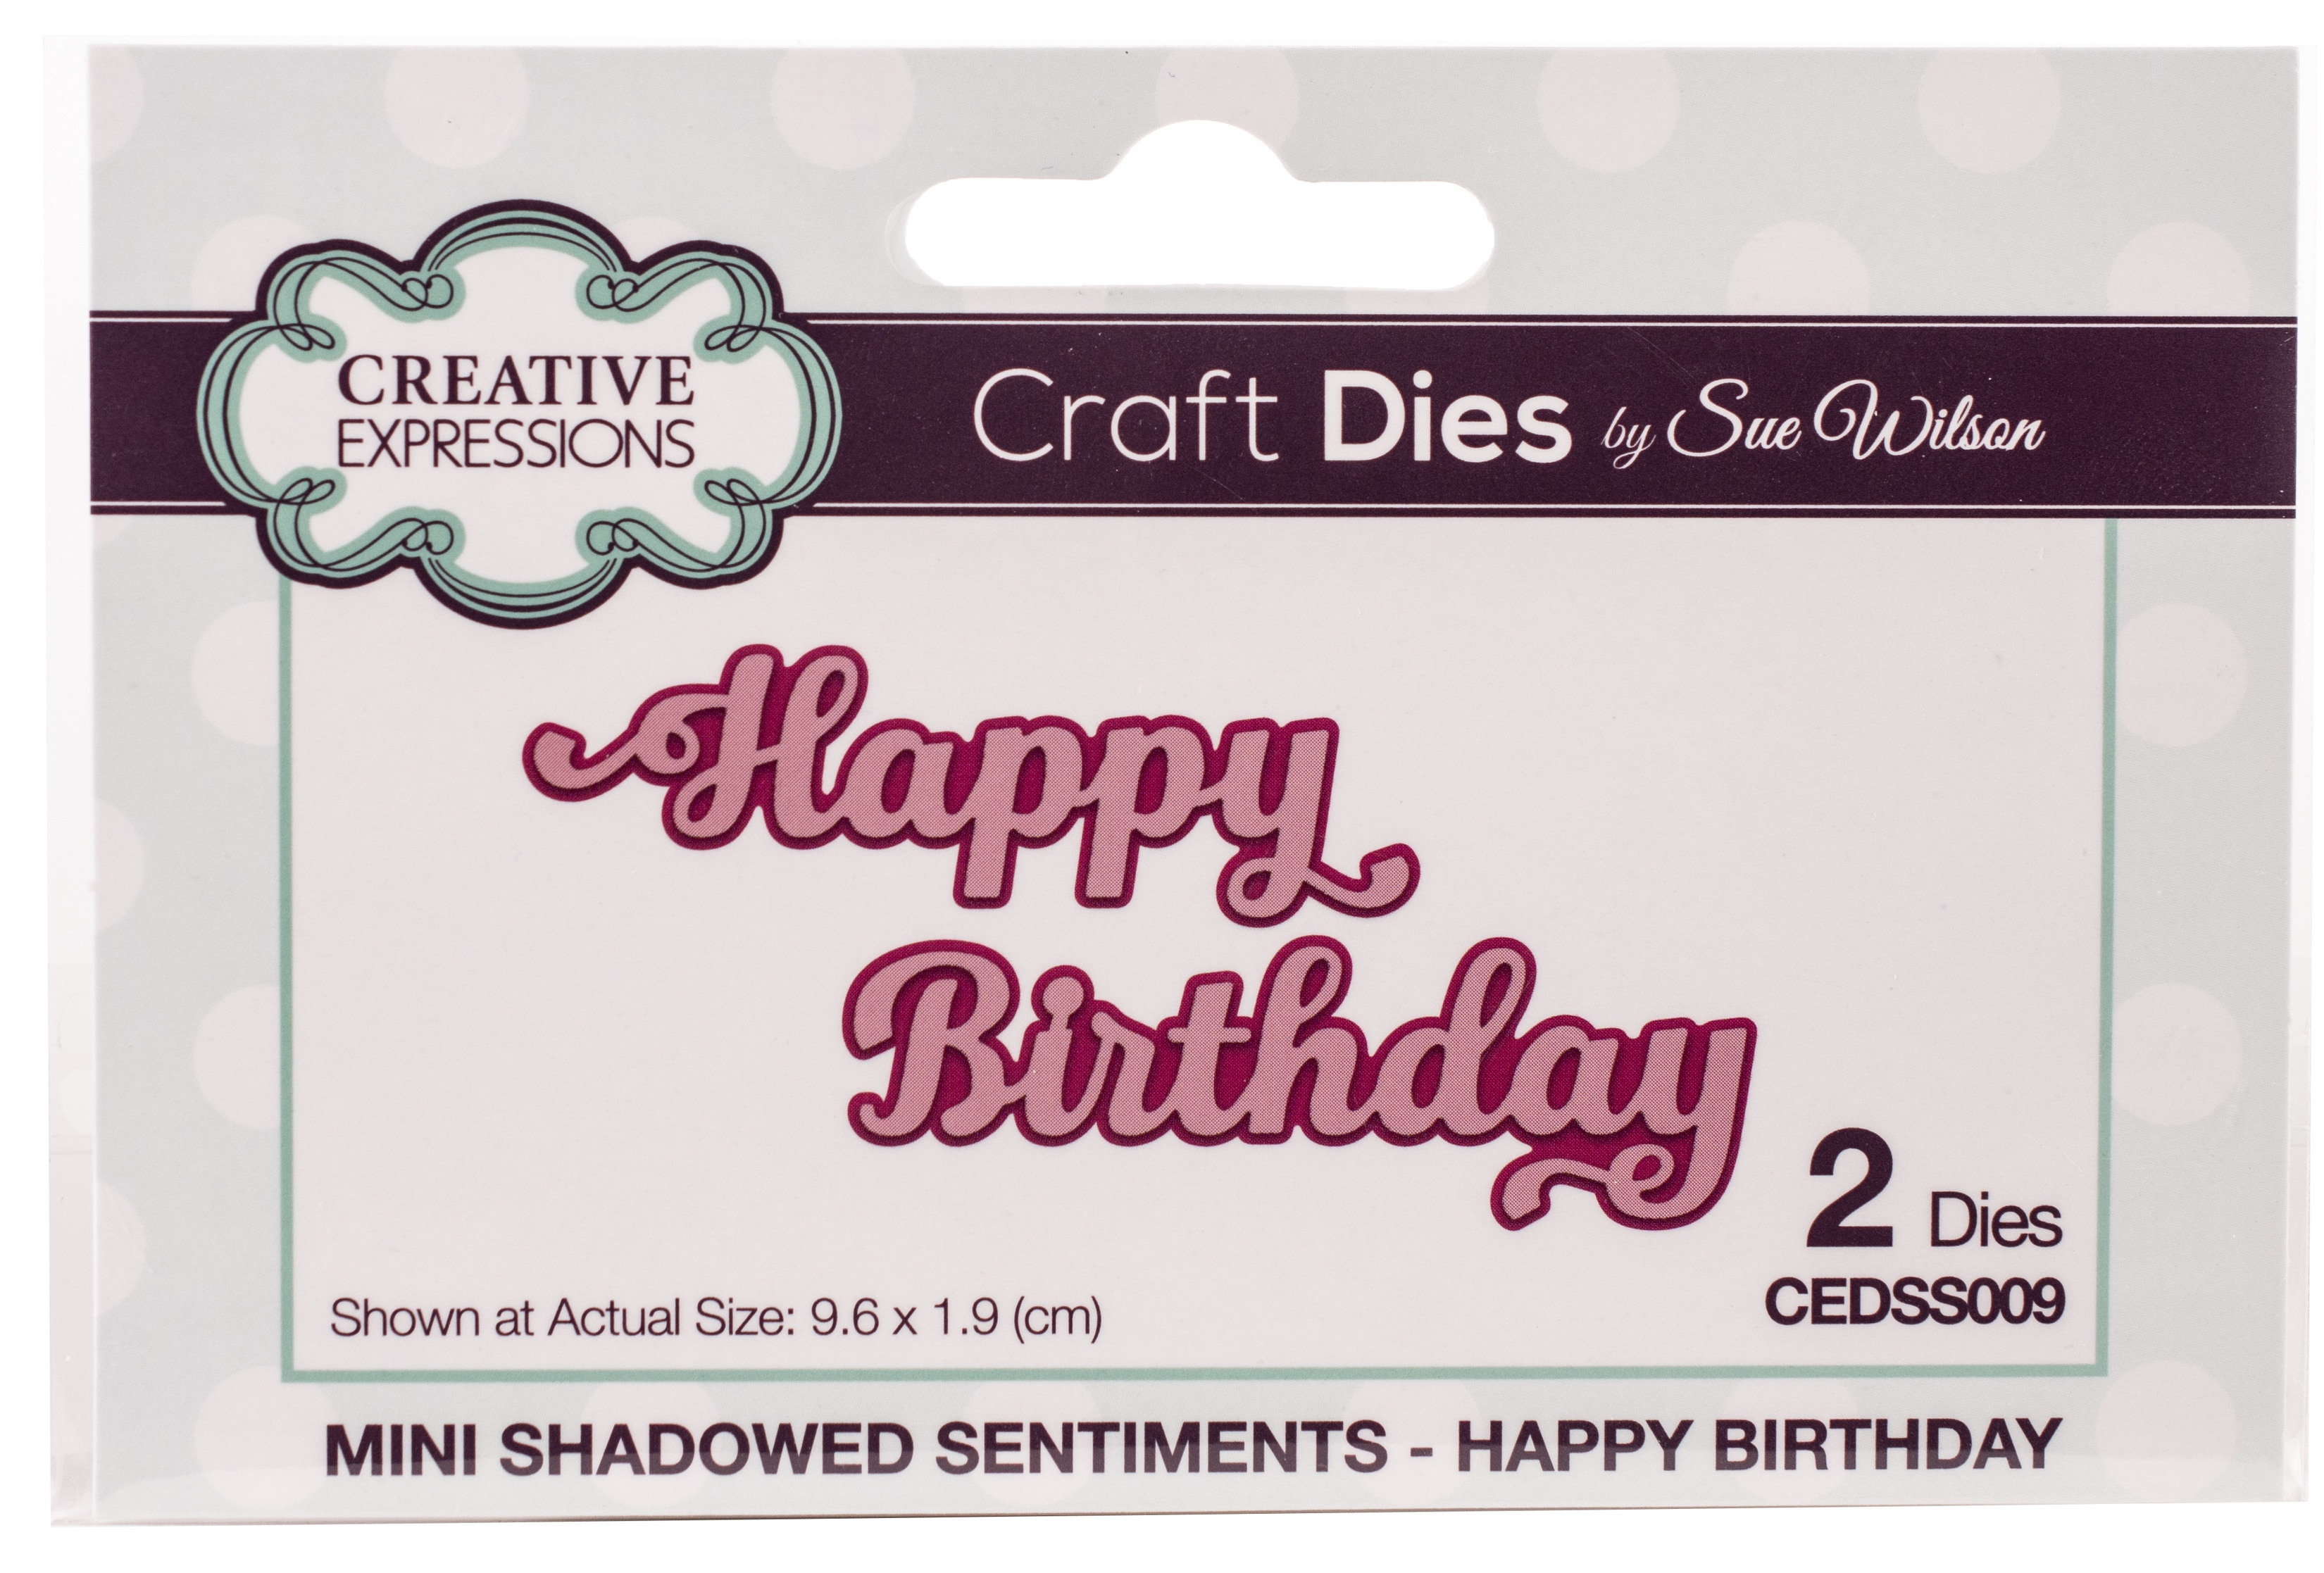 Creative Expressions Craft Dies By Sue Wilson-Shadowed Sentiments-Happy Birthday